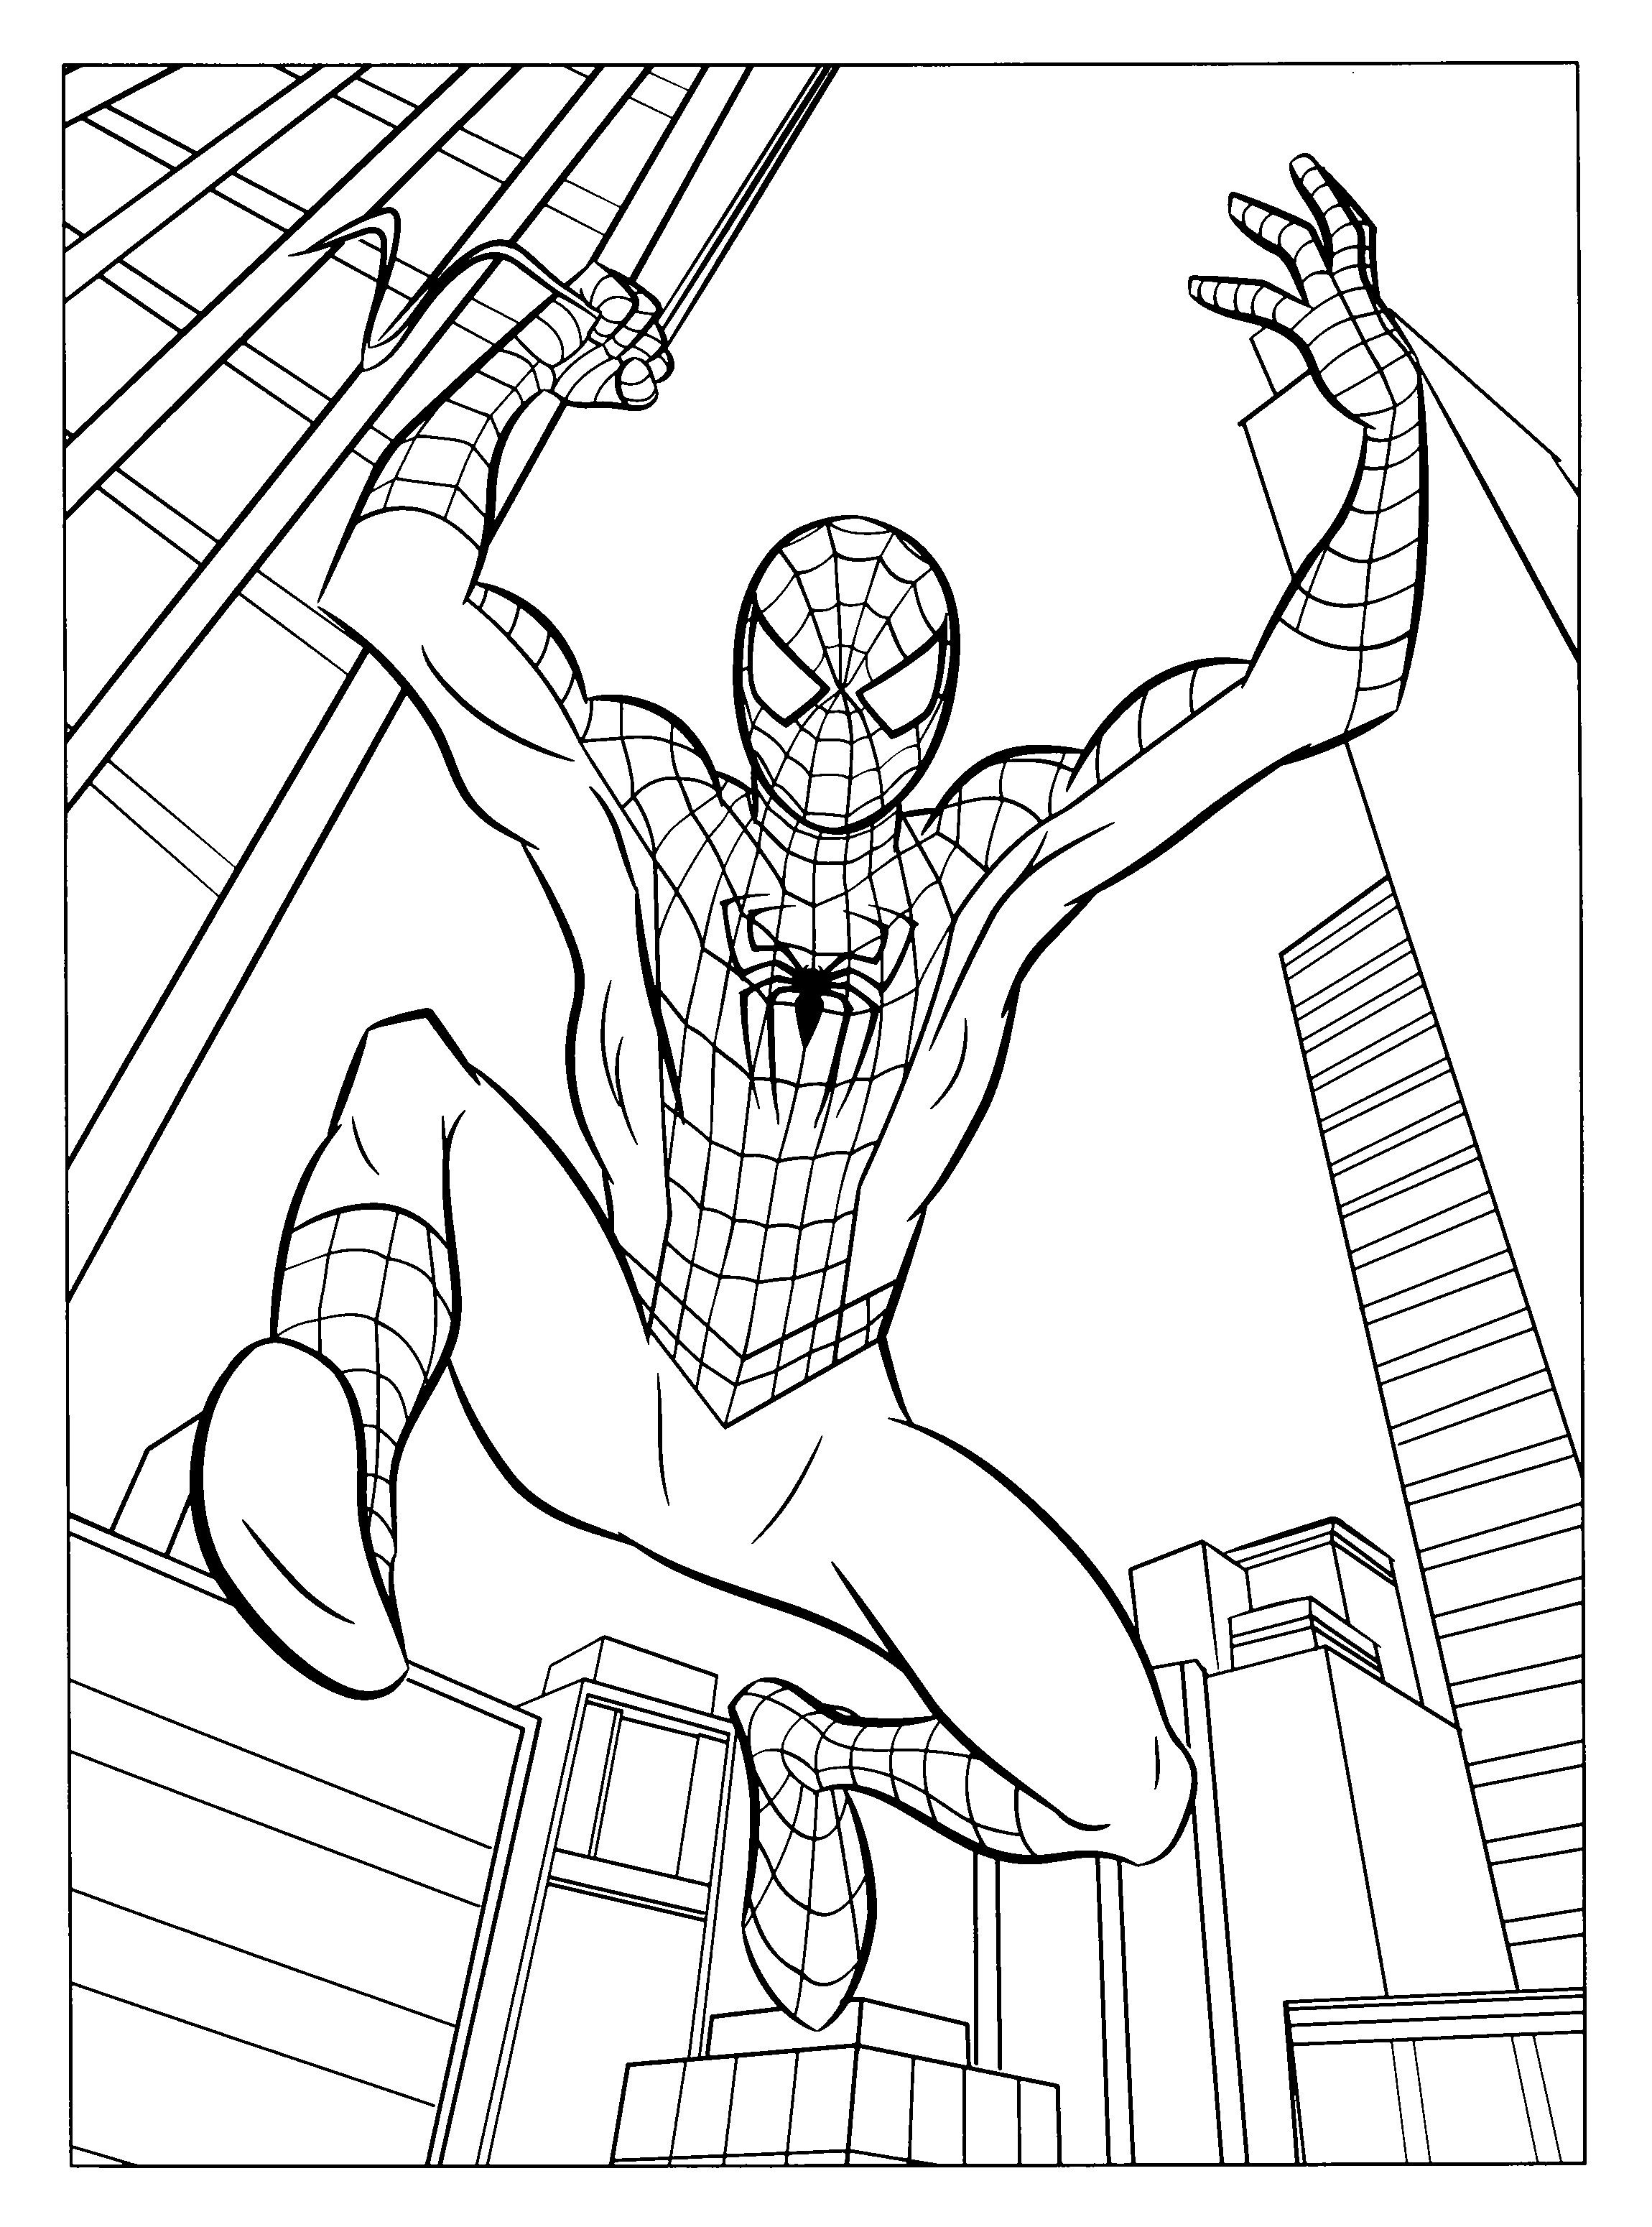 Free Printable Spiderman Coloring Pages For Kids | Noni And - Free Printable Spiderman Coloring Pages